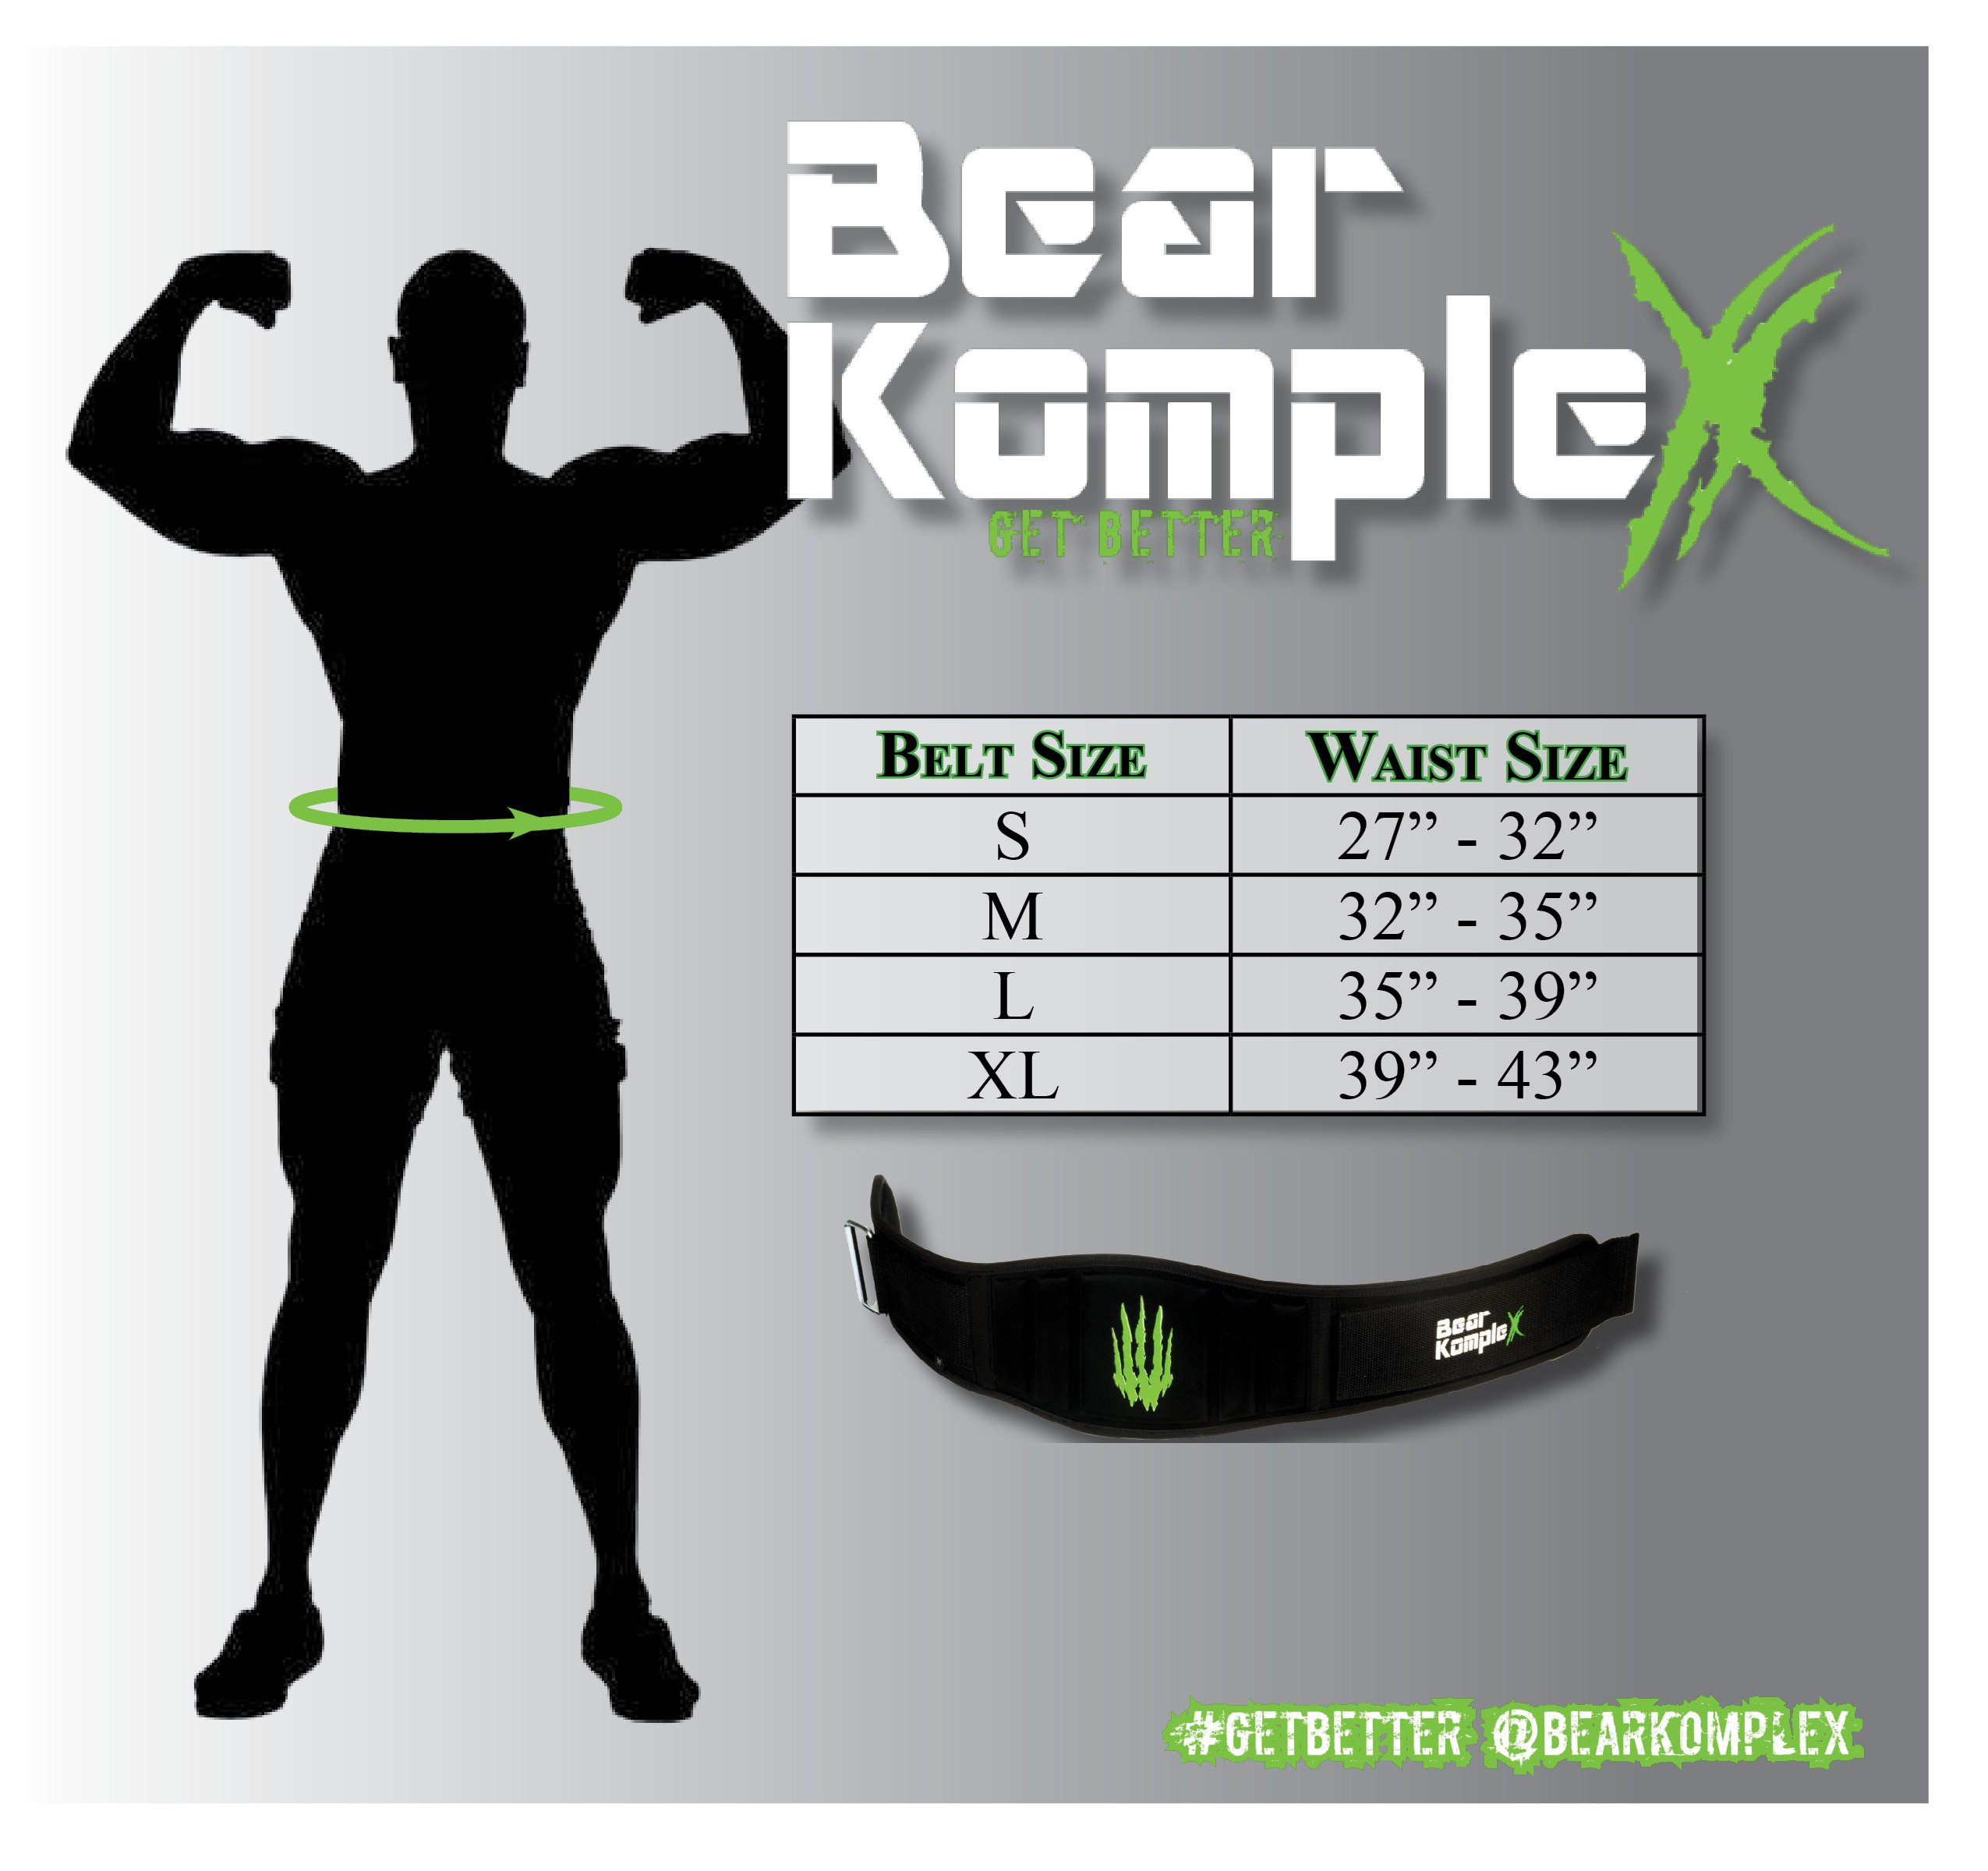 Bear KompleX 4'' Straight Weightlifting Belt for Powerlifting, Squats, Weight Training and More. Low Profile with Super Firm Back for Maximum Stability & Exceptional Comfort. Straight Black S by Bear KompleX (Image #3)